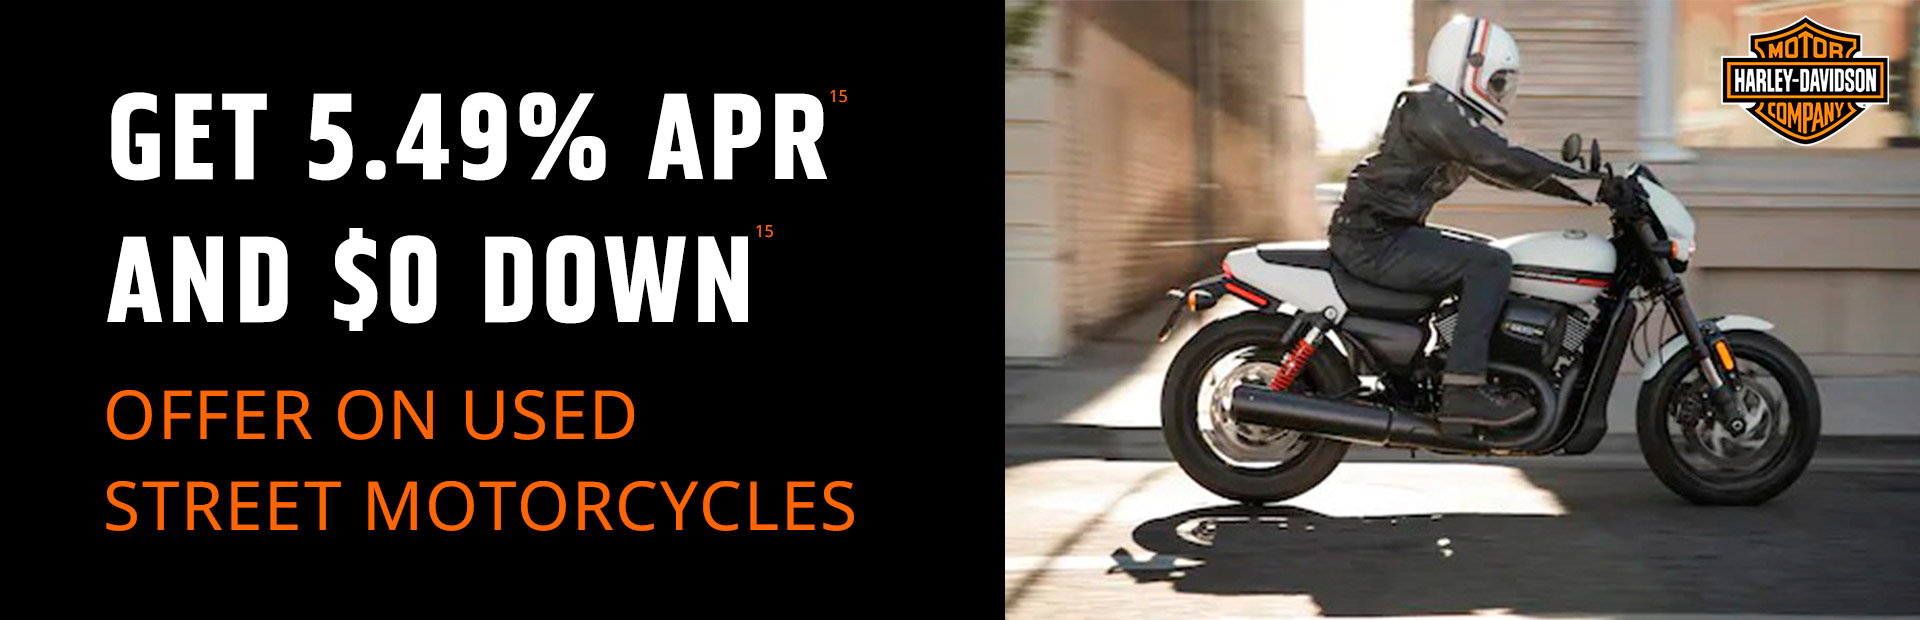 Harley-Davidson®: GET 5.49% APR15 AND $0 DOWN15 ON USED STREET